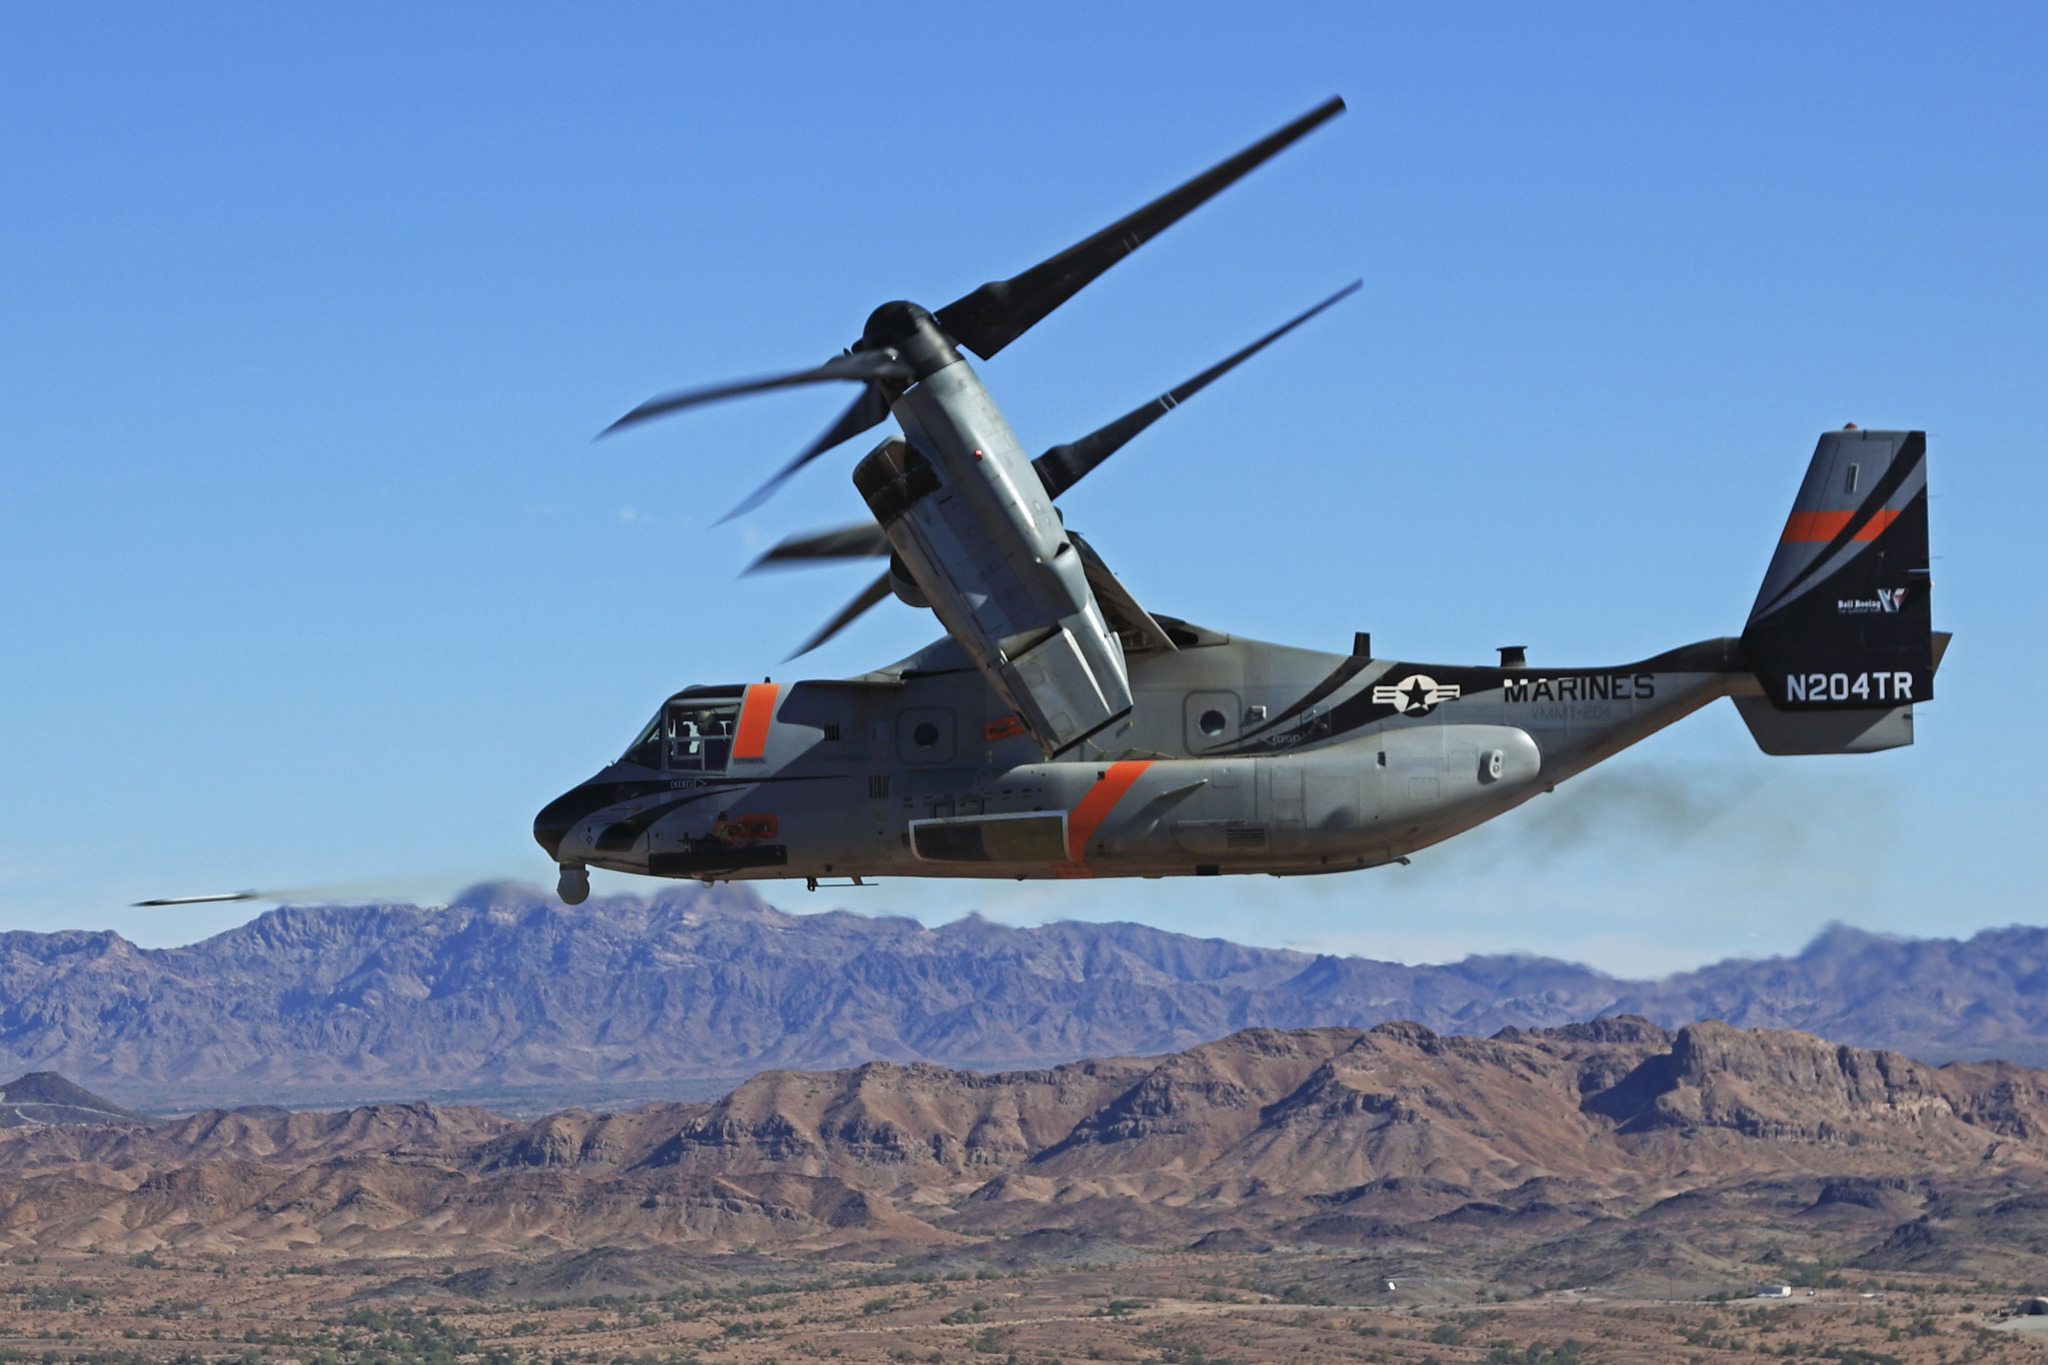 V-22-N204TR-rocket-launch.jpg